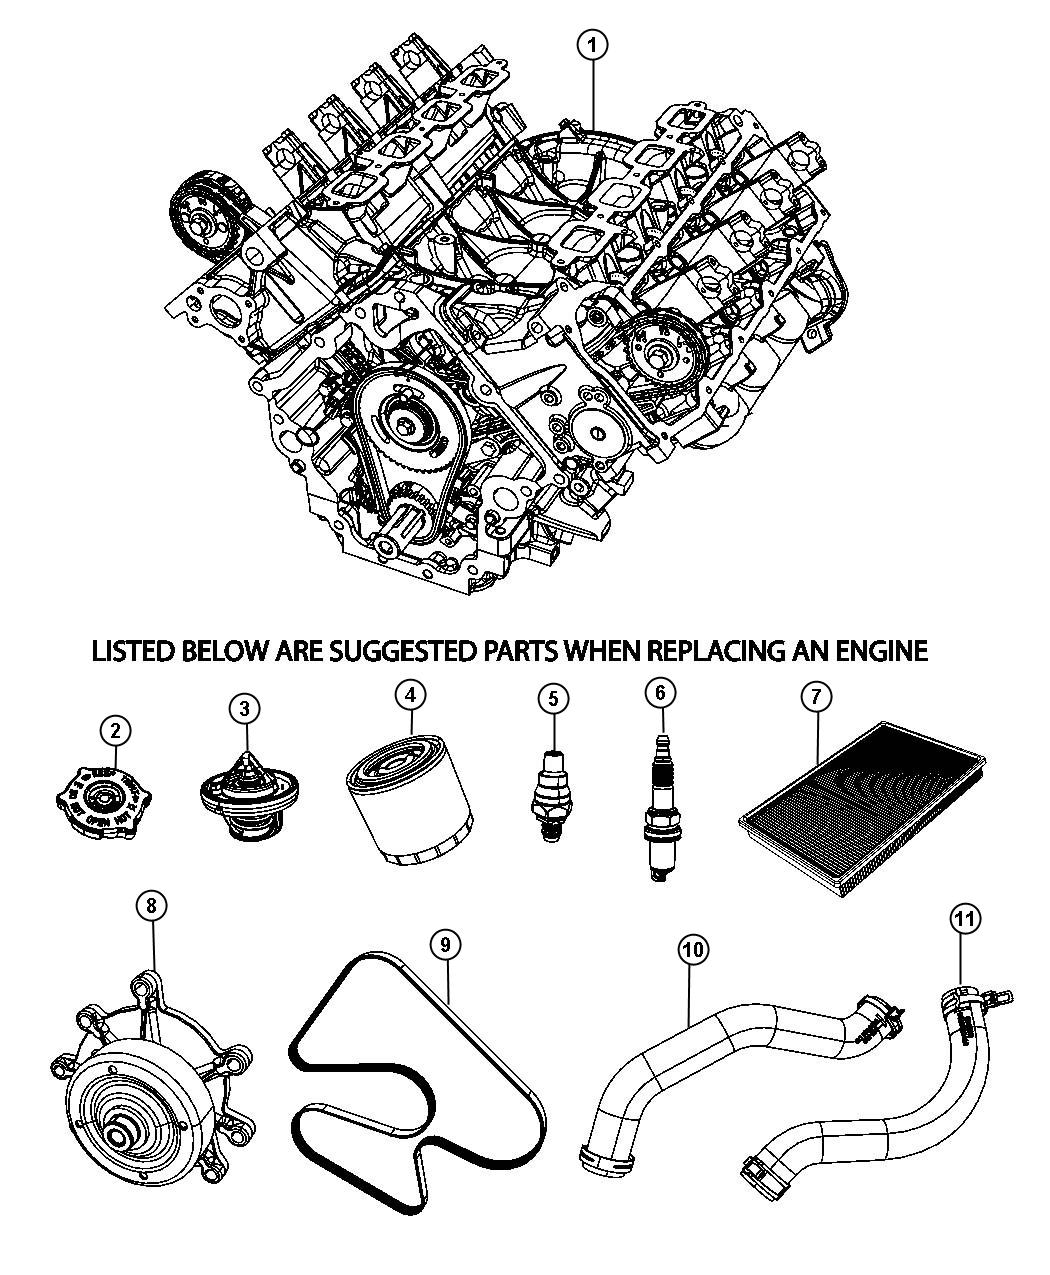 Jeep Liberty Engine Long Block See Note Suggested